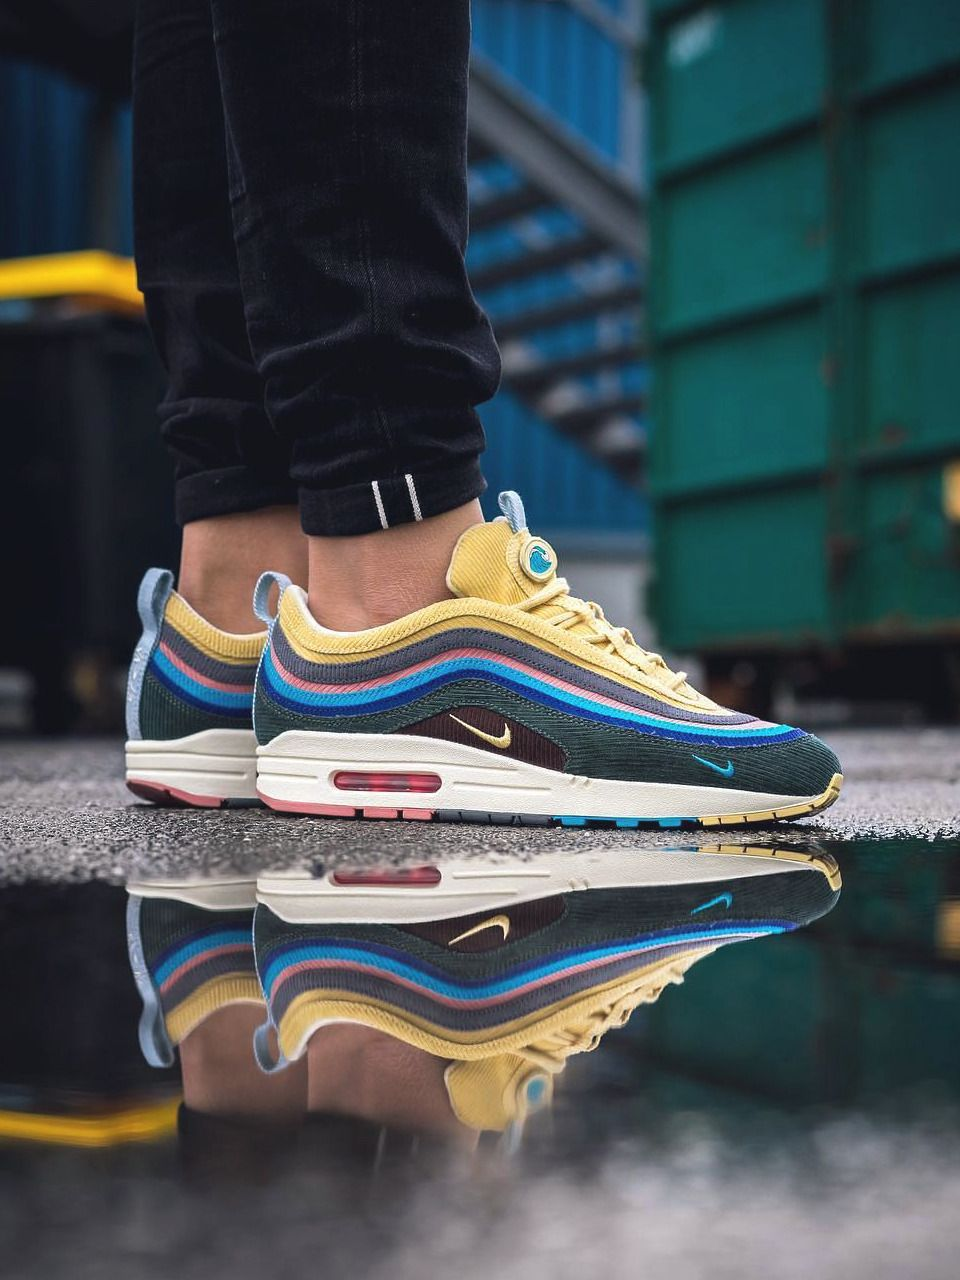 Sean Wotherspoon x Nike Air Max 1/97 2018 (by inmidoutsole)